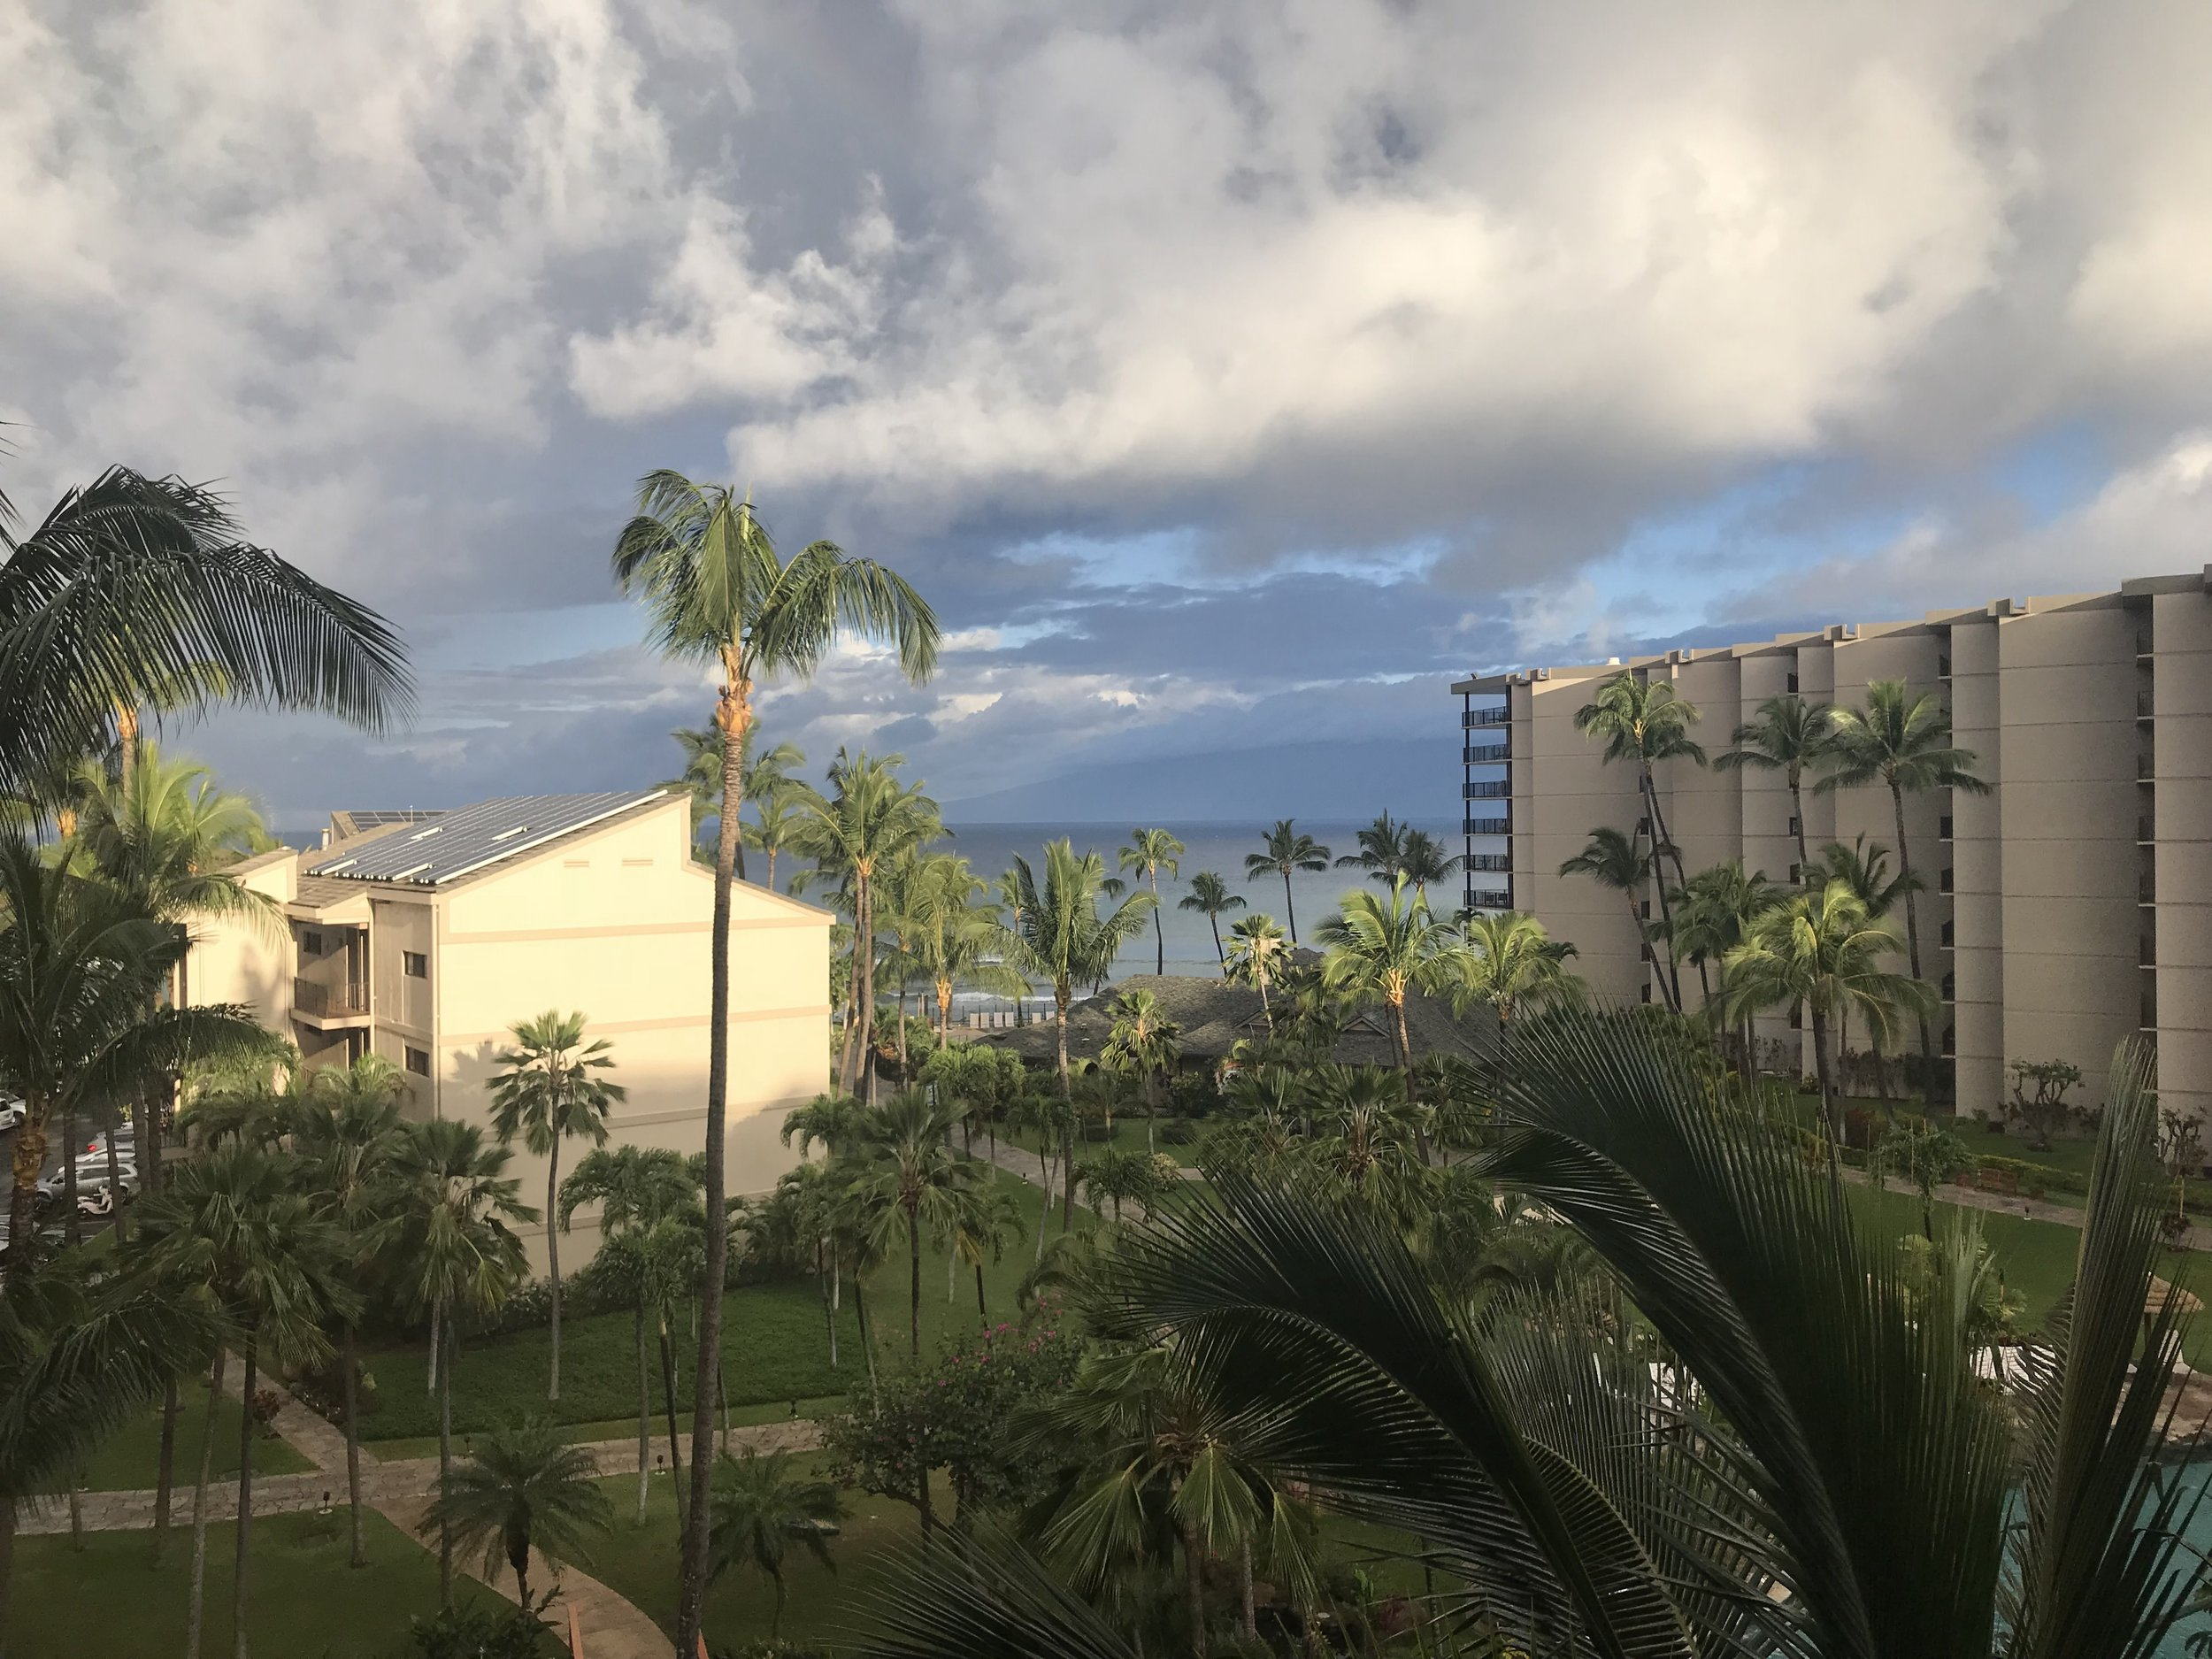 The view from our hotel room at Aston Kaanapali Shores.